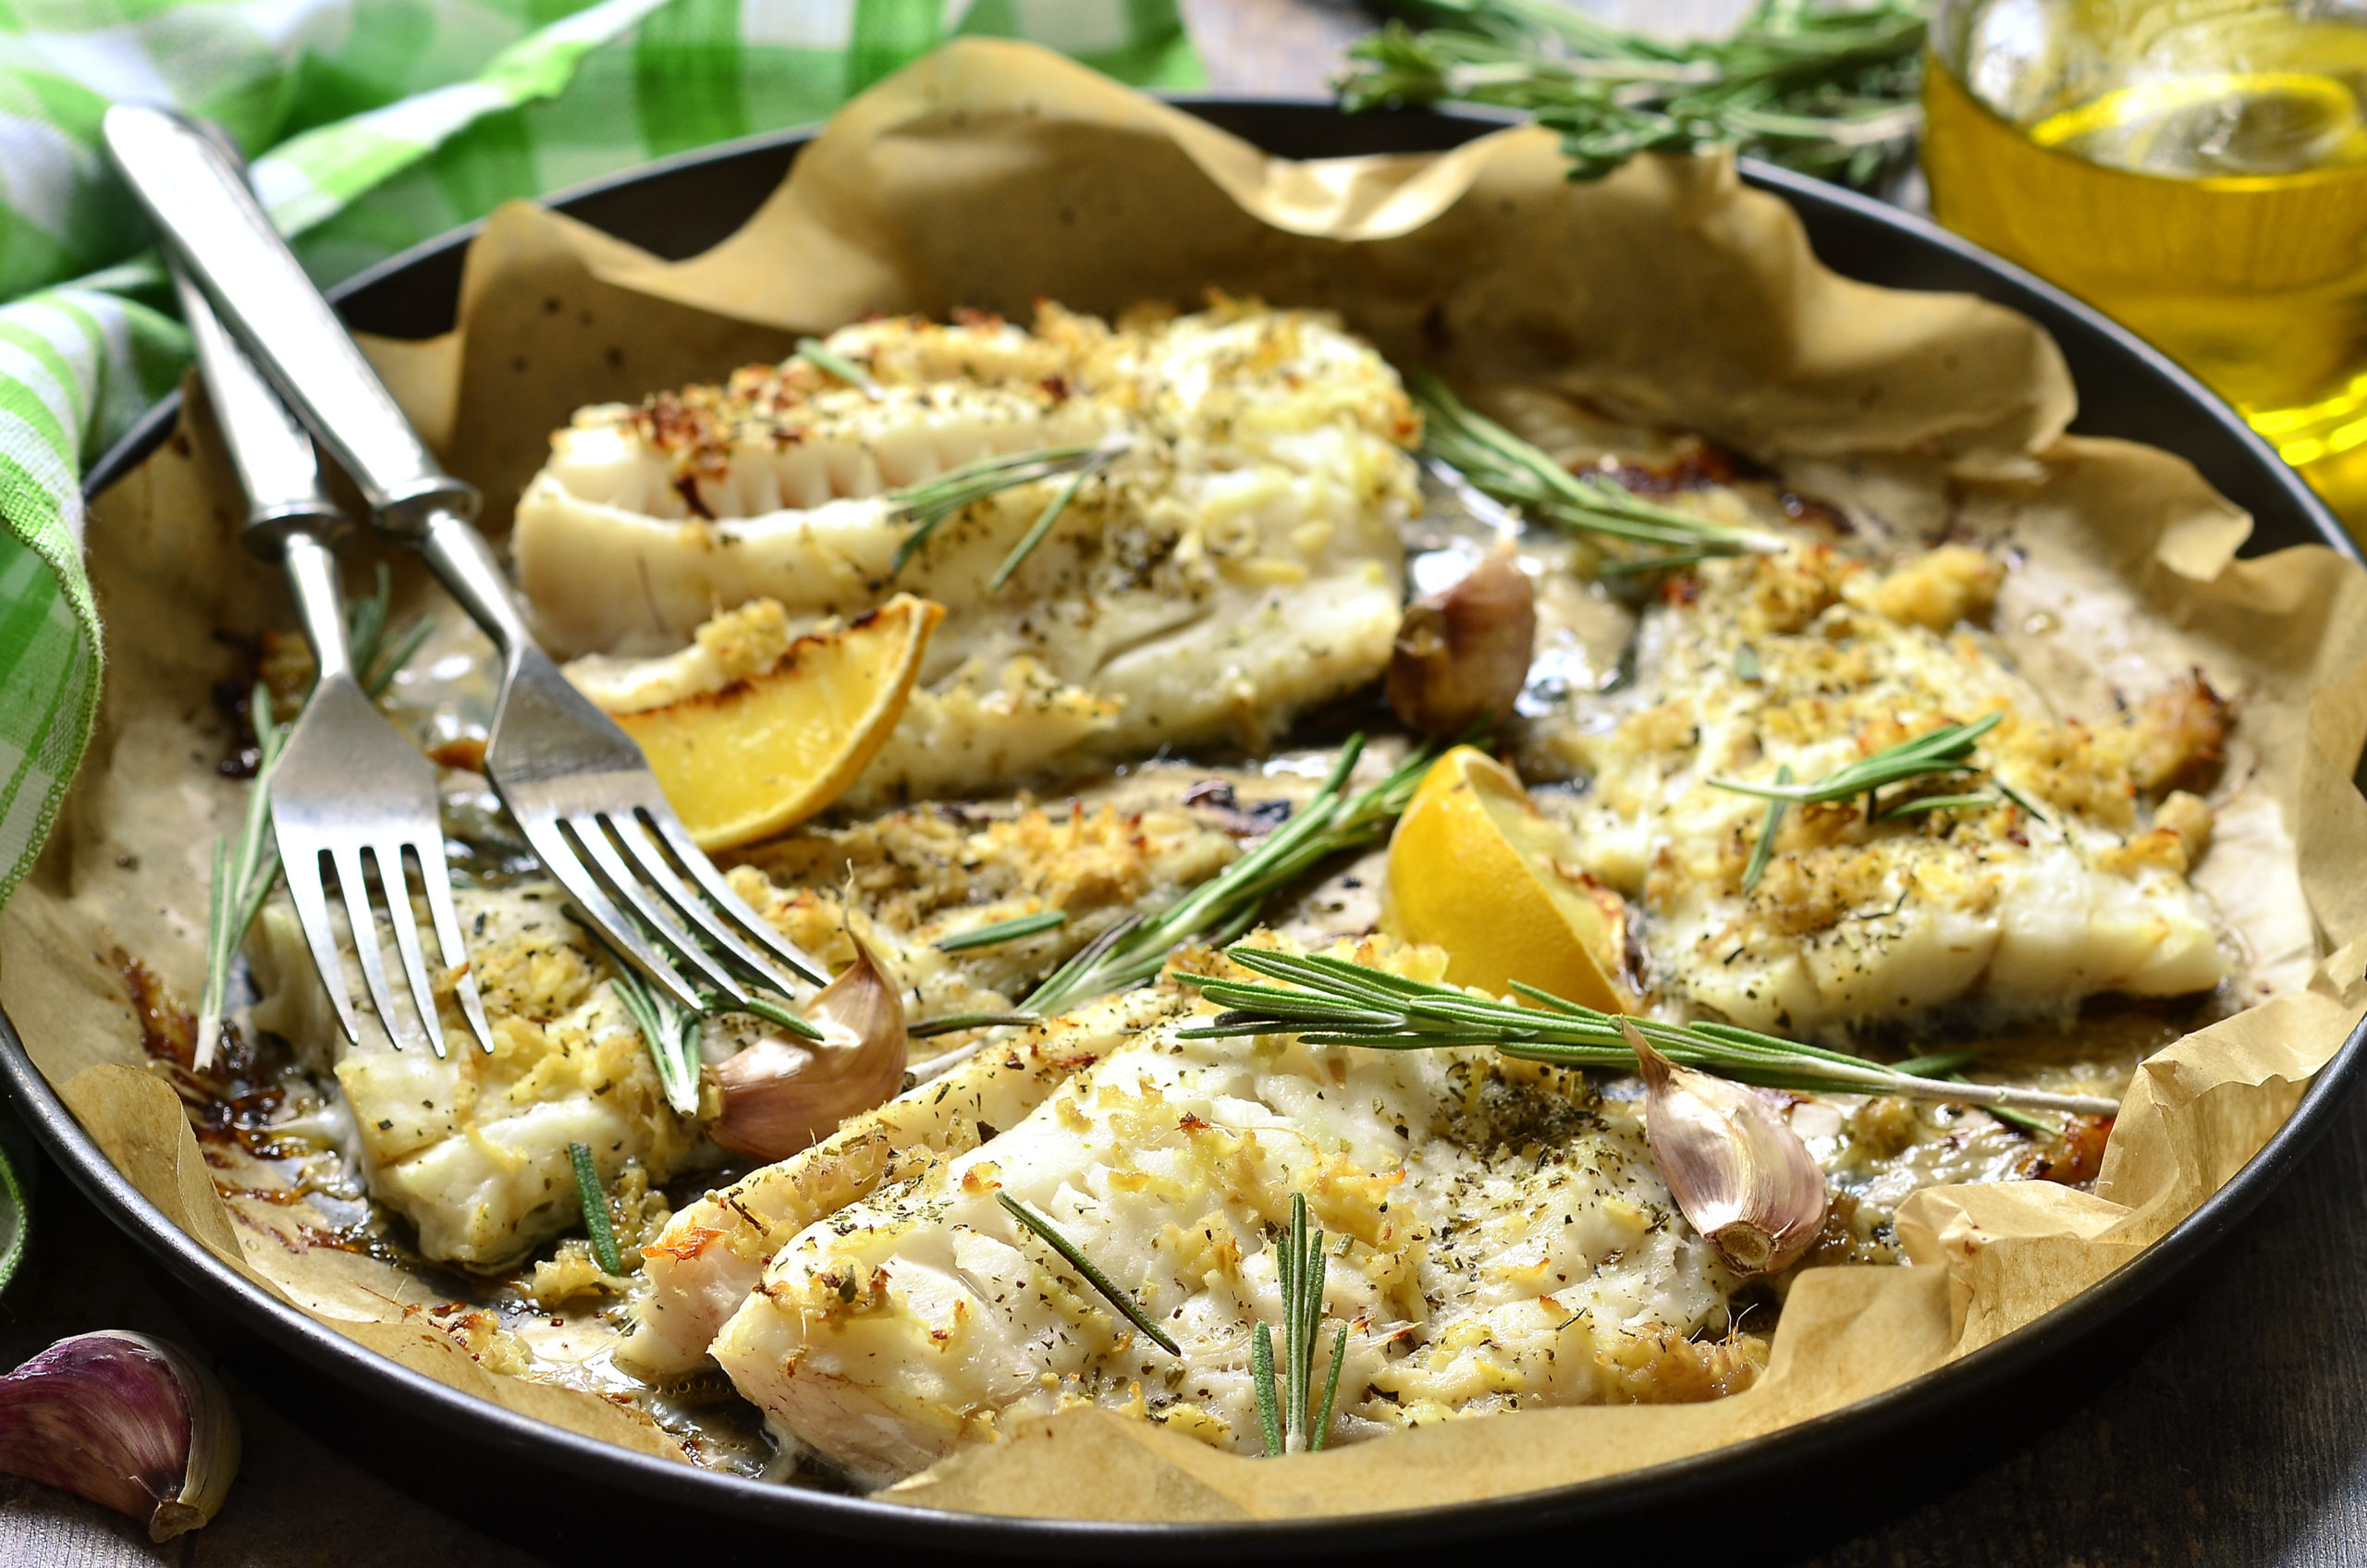 Codfish with lemon and ginger sauce